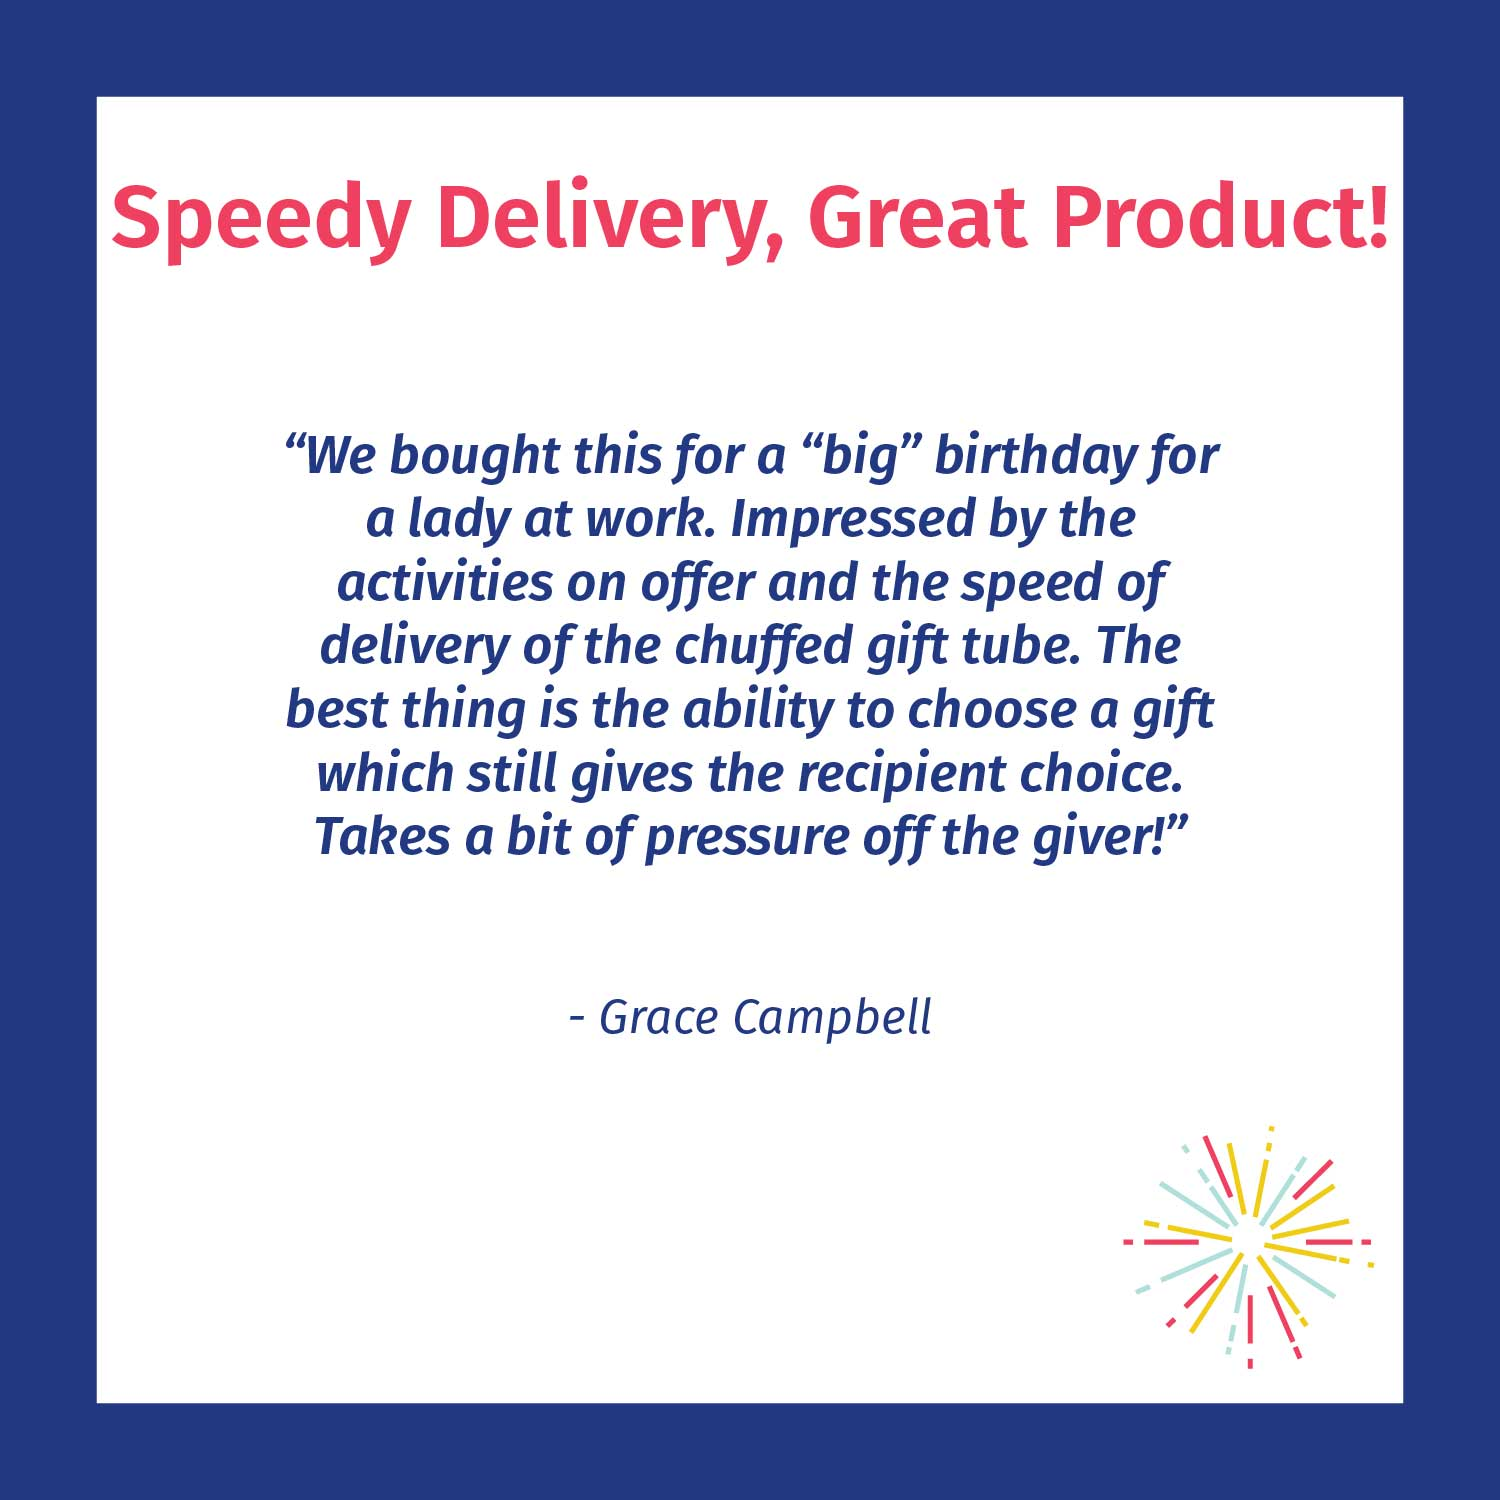 Speedy delivery - great product - Chuffed customer review